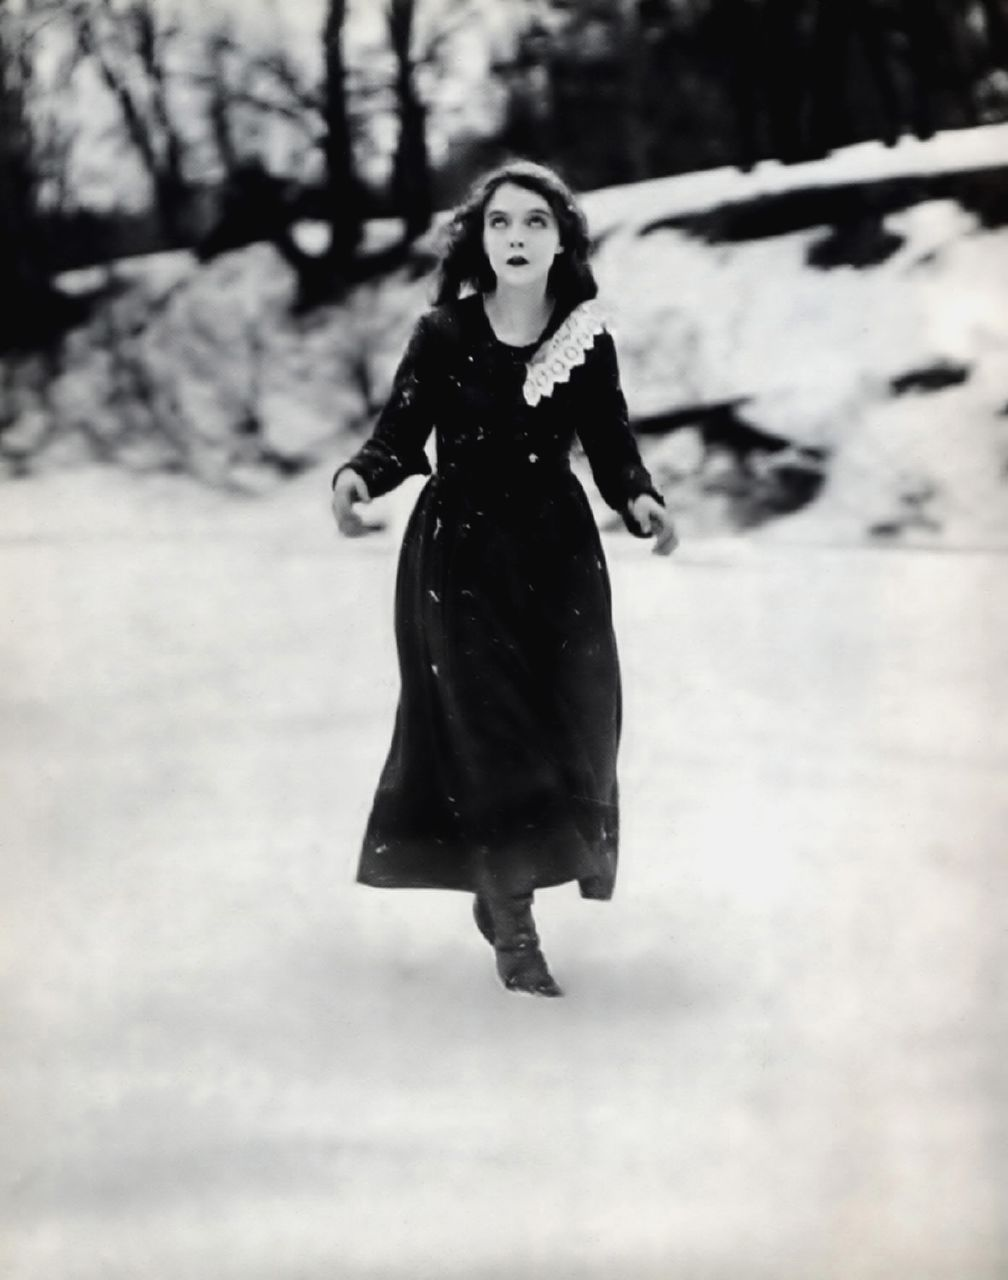 Lillian Gish did her own ice/waterfall scenes in this movie!